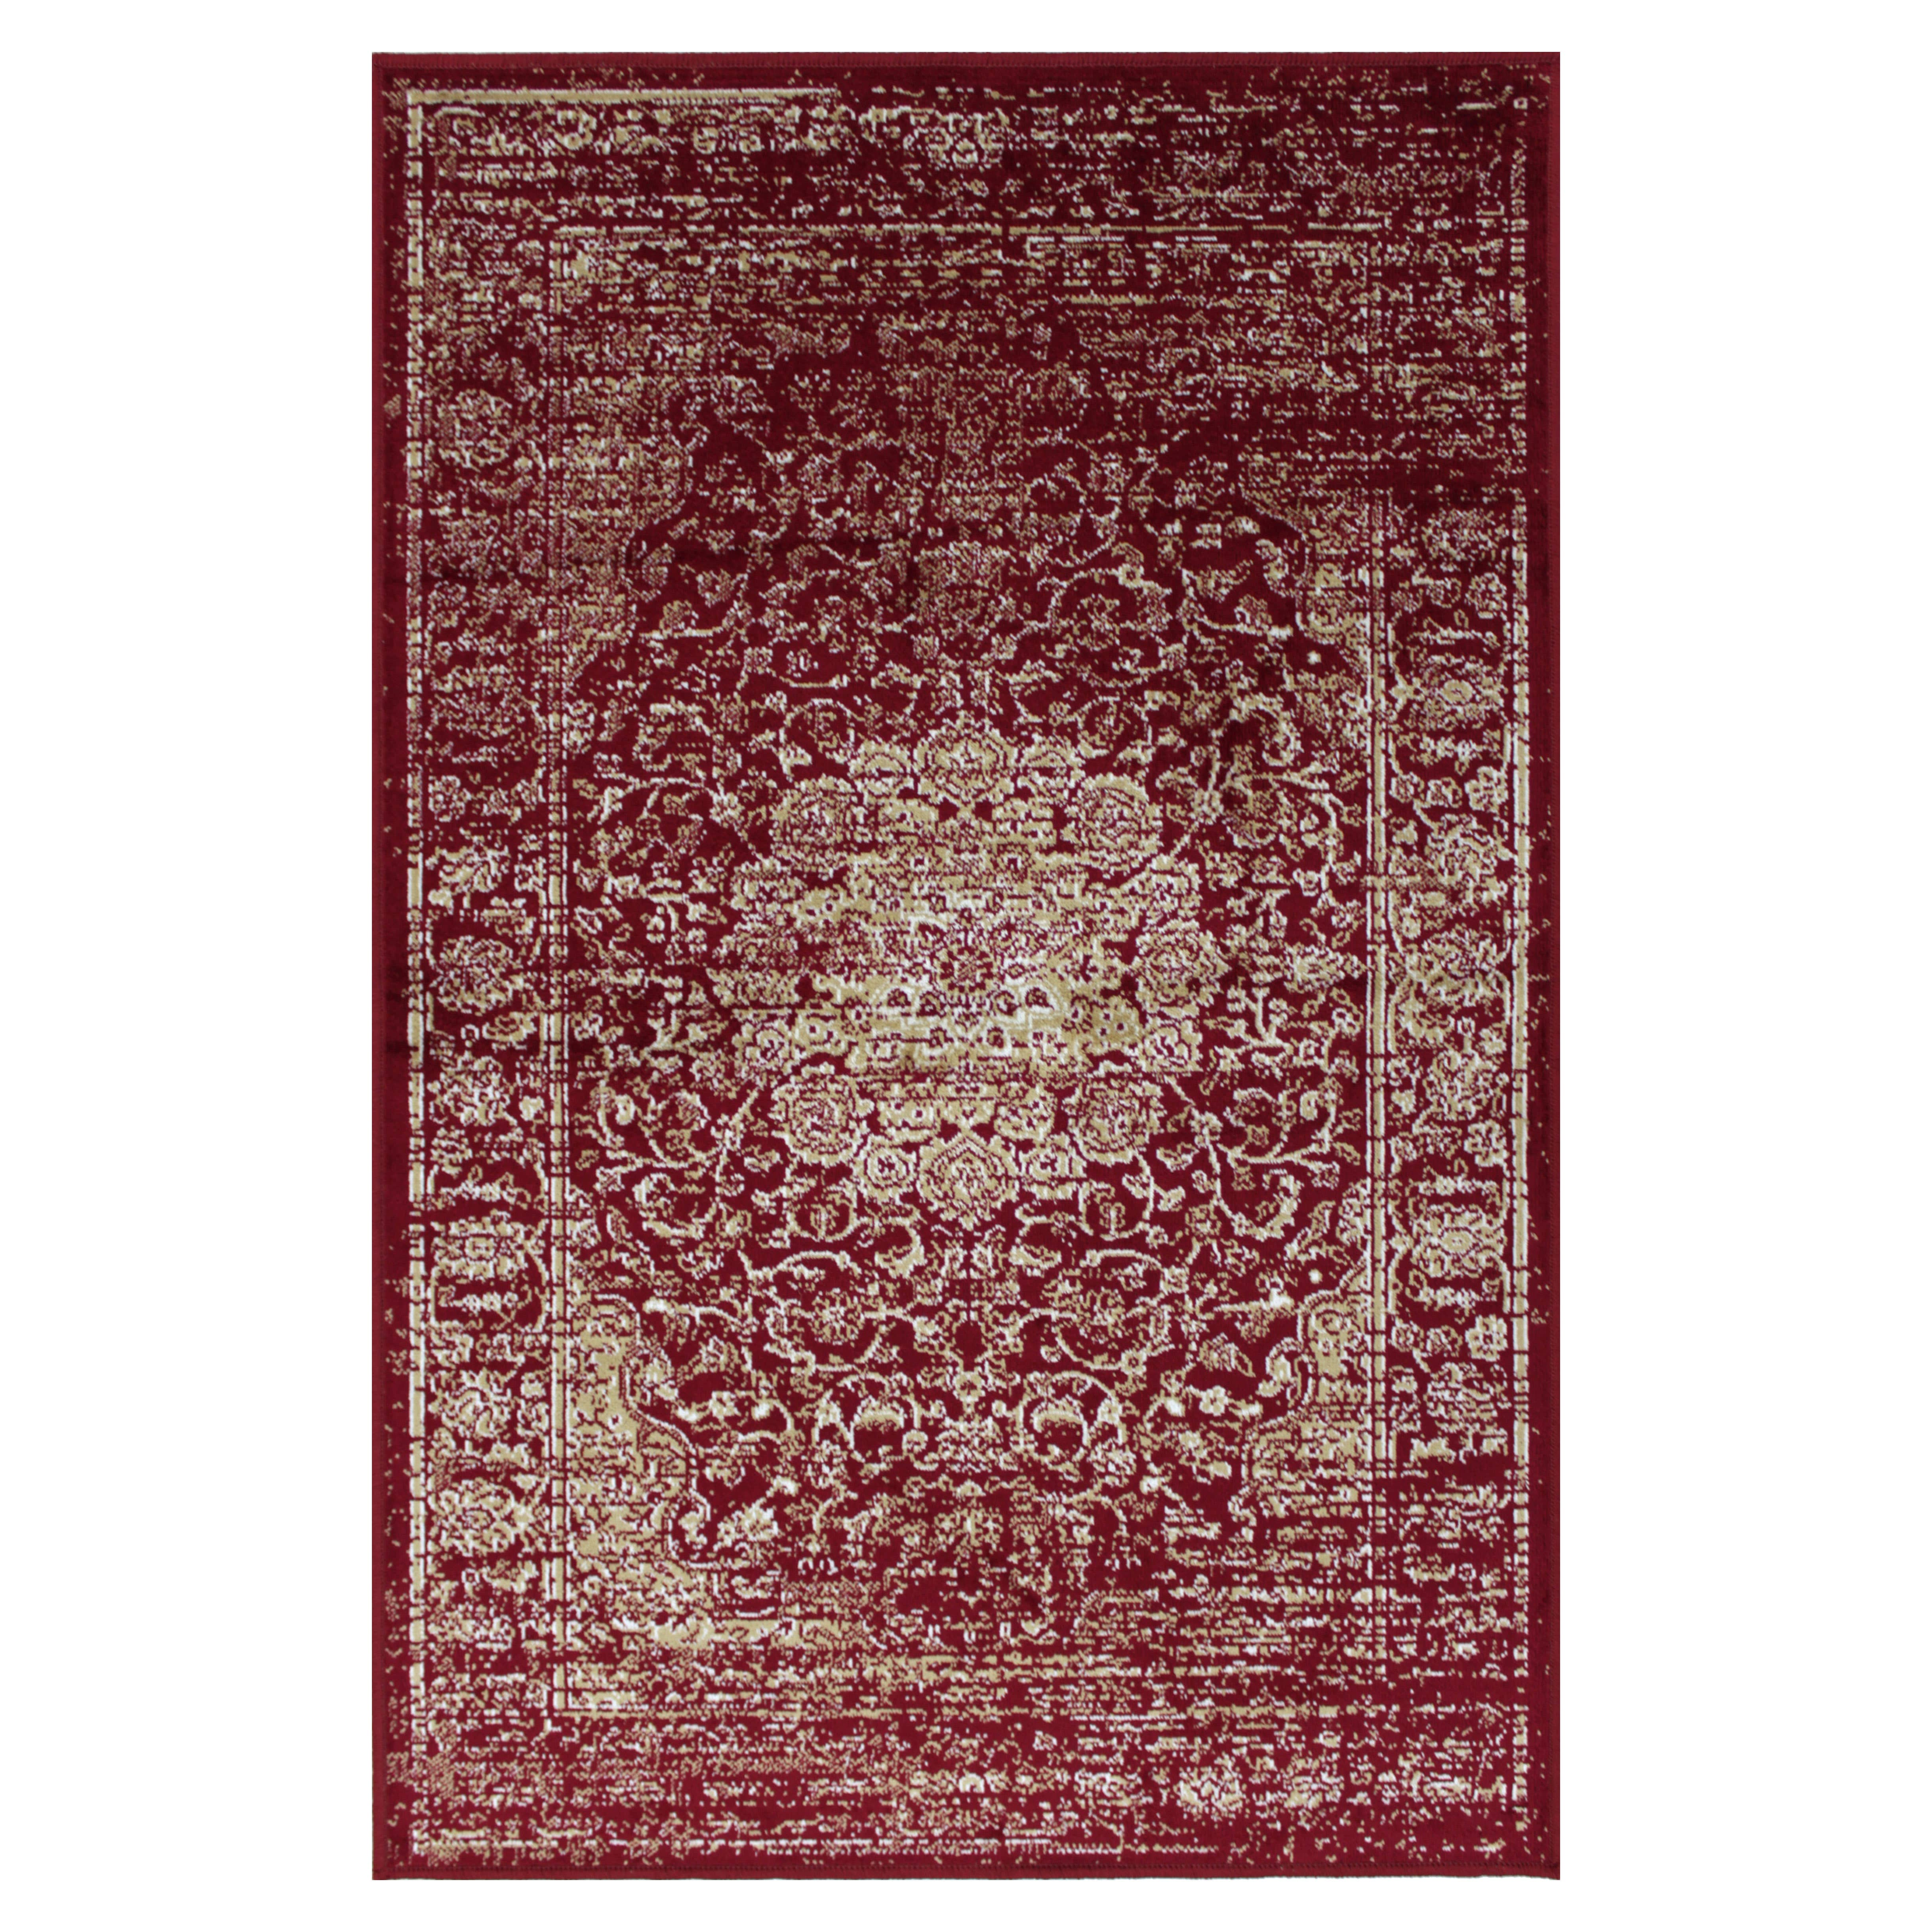 rug at linen chest